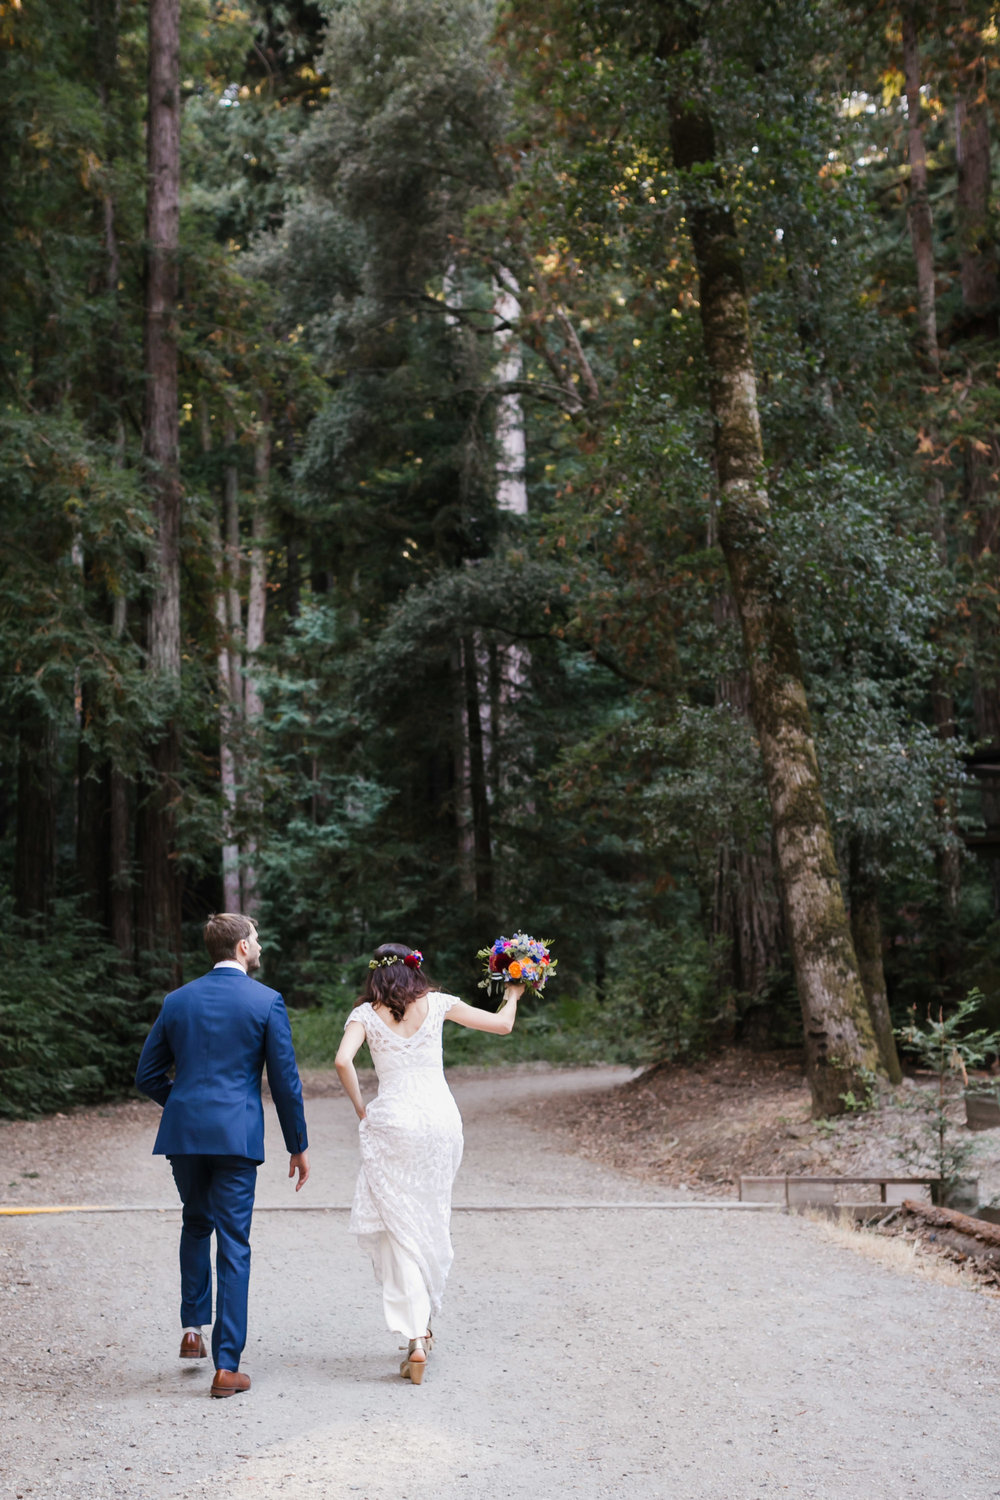 Wedding couple walk up a path together